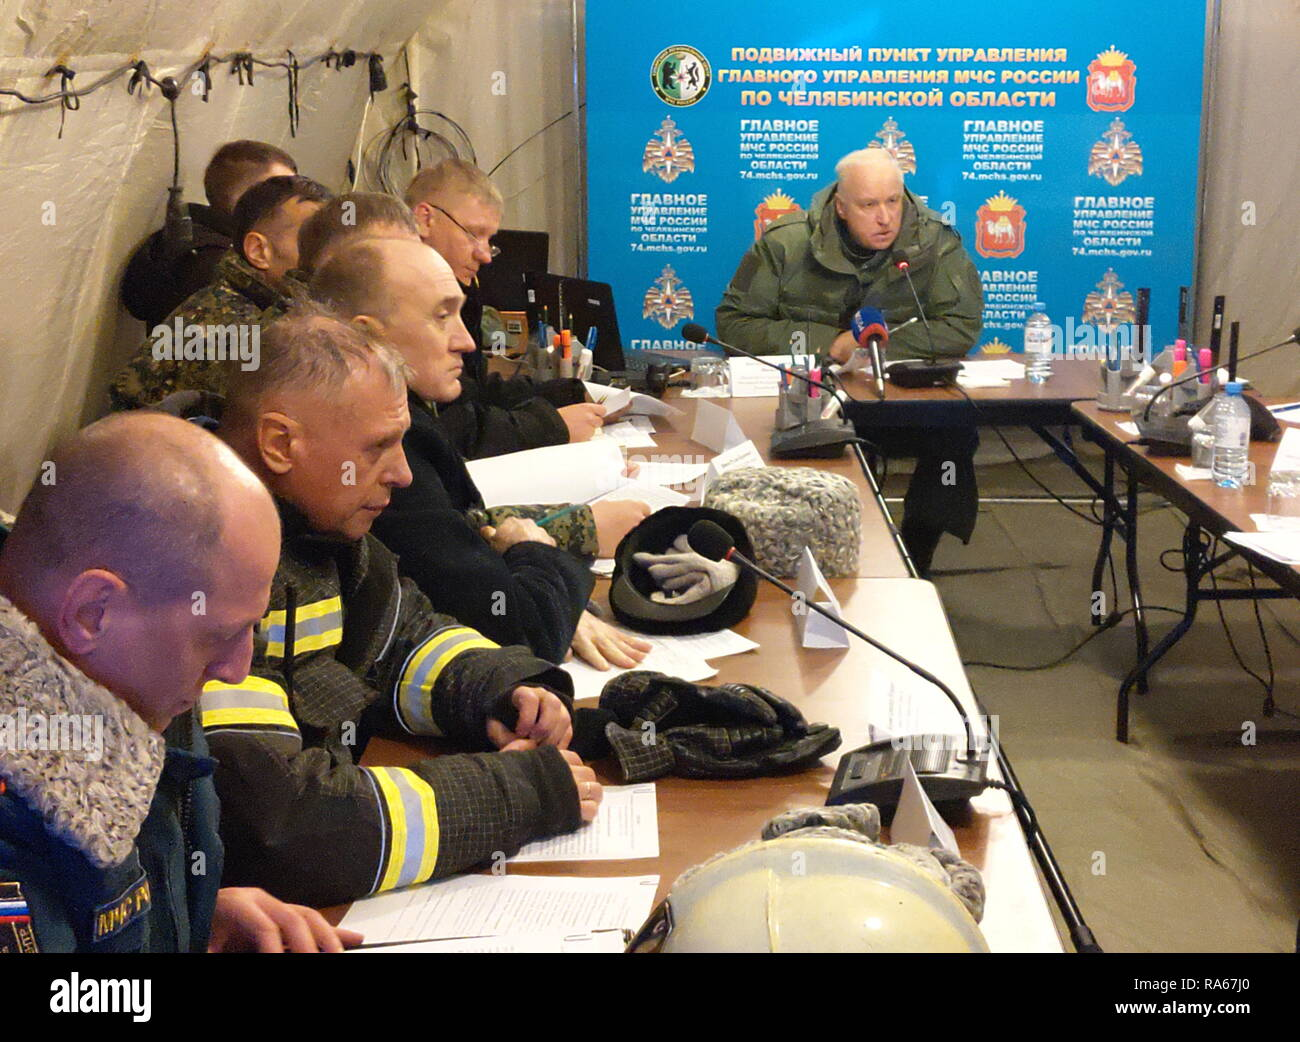 MAGNITOGORSK, RUSSIA - JANUARY 1, 2019: Russian Investigative Committee (SK) Chairman Alexander Bastrykin (R) and Chelyabinsk Region Governor Boris Dubrovsky (3rd L) at an emergency response center of the Russian Emergency Situations Ministry at the site of an apartment block collapse. On December 31, 2018, a domestic gas explosion caused a partial collapse of a residential building at 164 Prospekt Karla Marksa Street killing nine people and leaving dozens missing. Press Office of the Chelyabinsk Region Governor/TASS - Stock Image